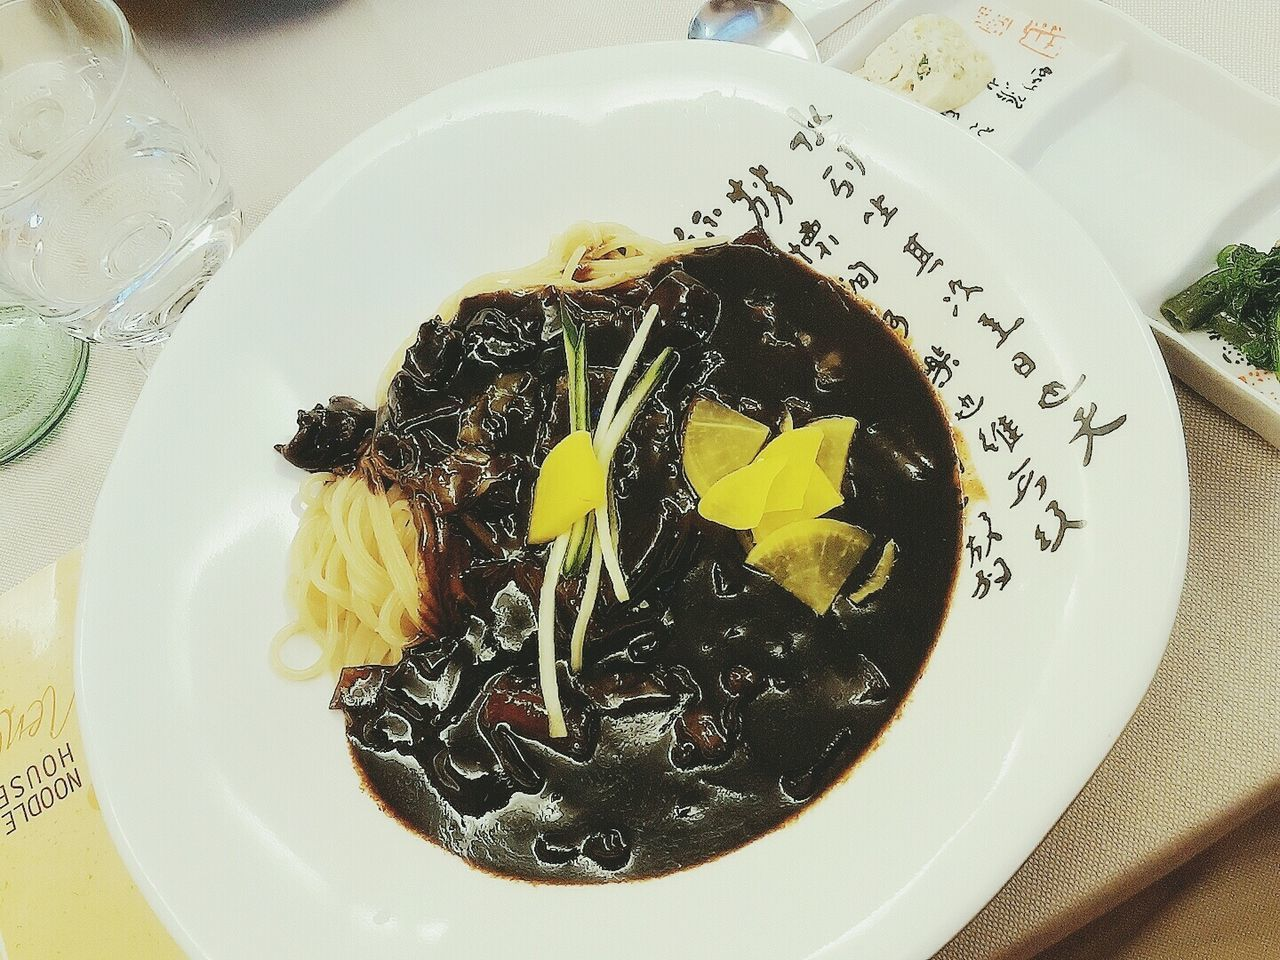 Jajangmyon 🍝🍝 Jajangmyeon Jajangnyum Coreanfood Corean Food♡ Foodporn❤️ Food No People